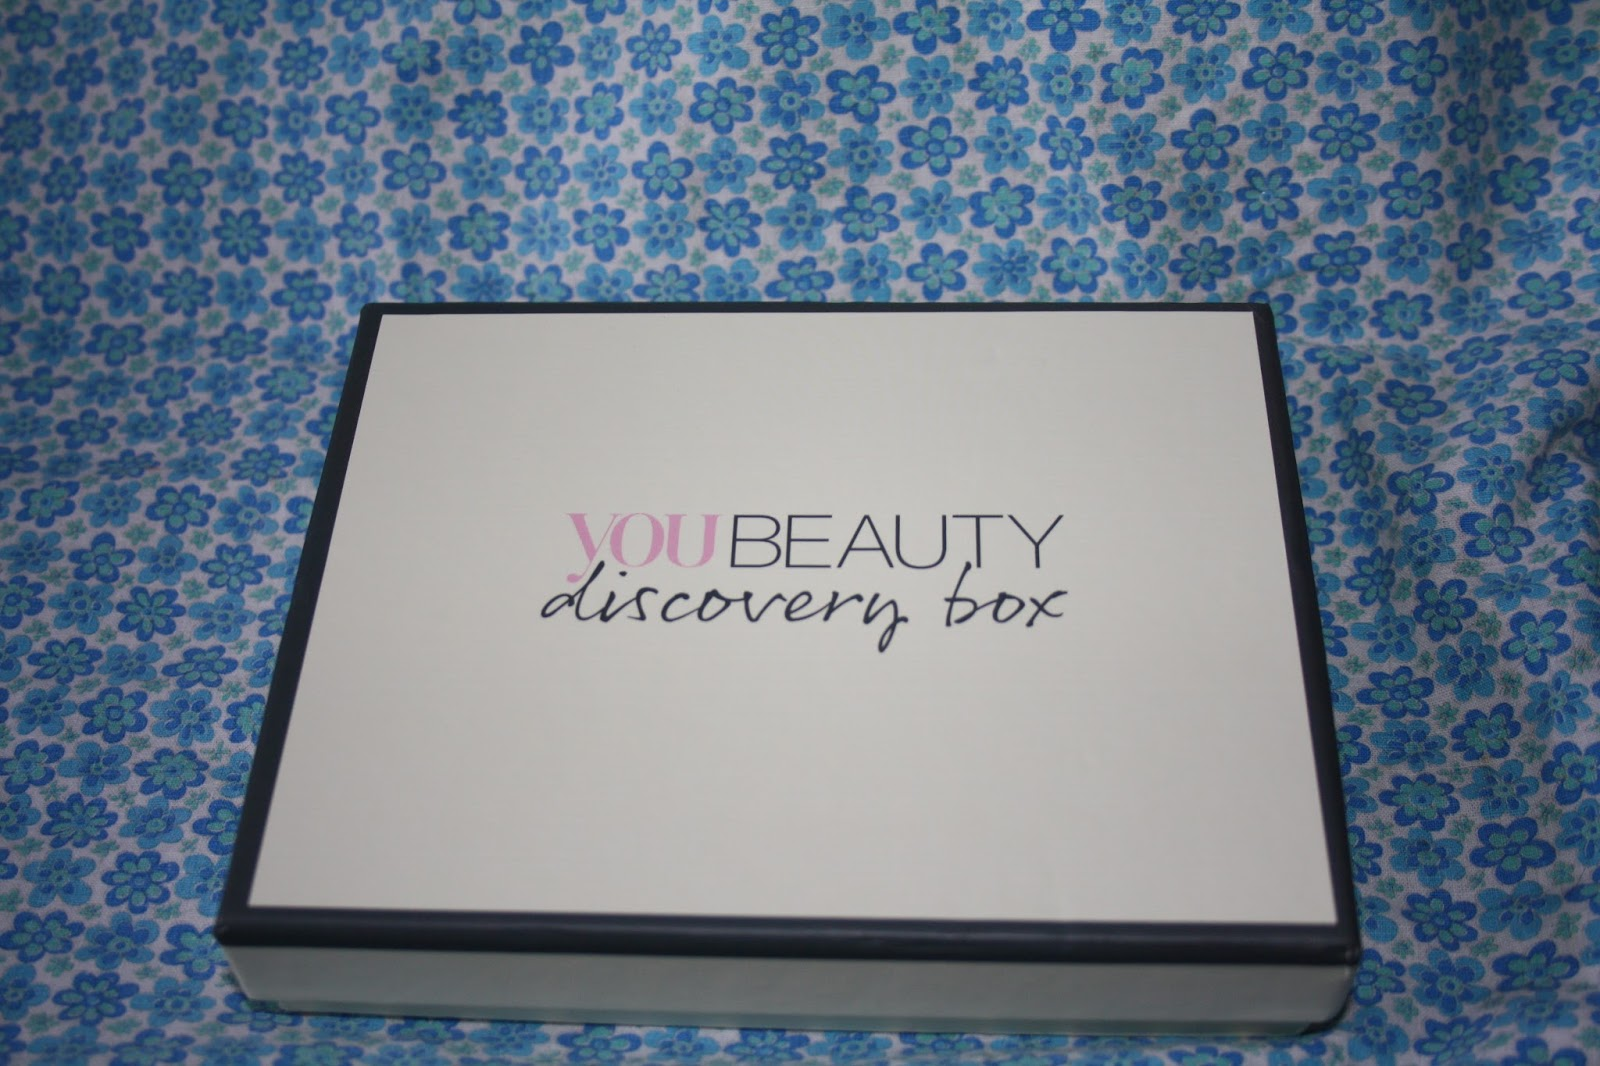 You Beauty Discovery Box - July Edition